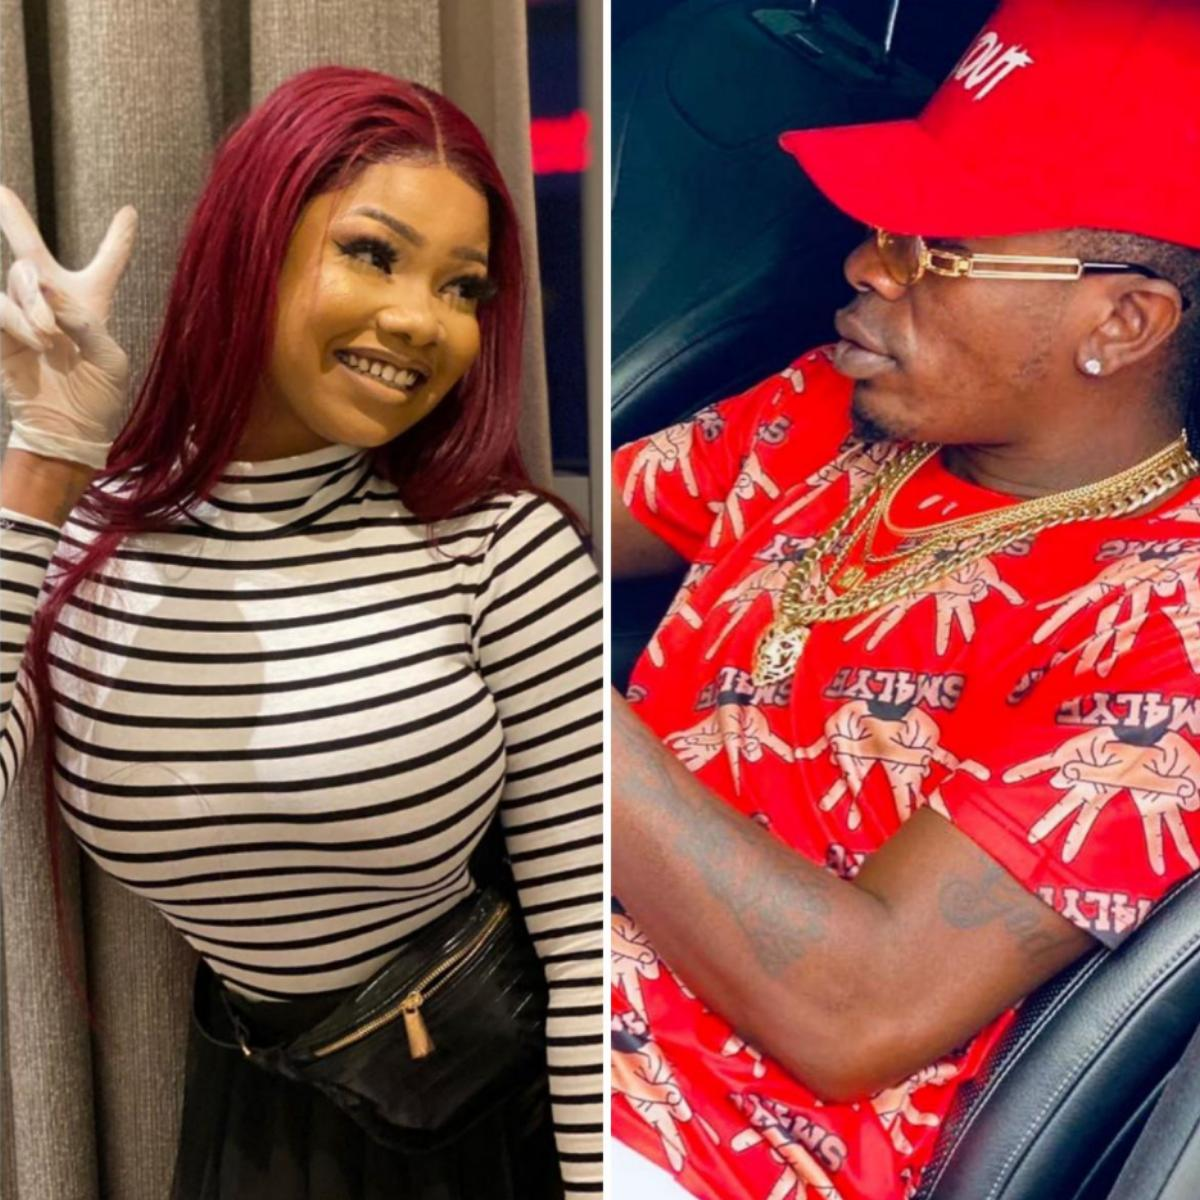 Tacha Tells Shatta Wale She Will Cook For Him